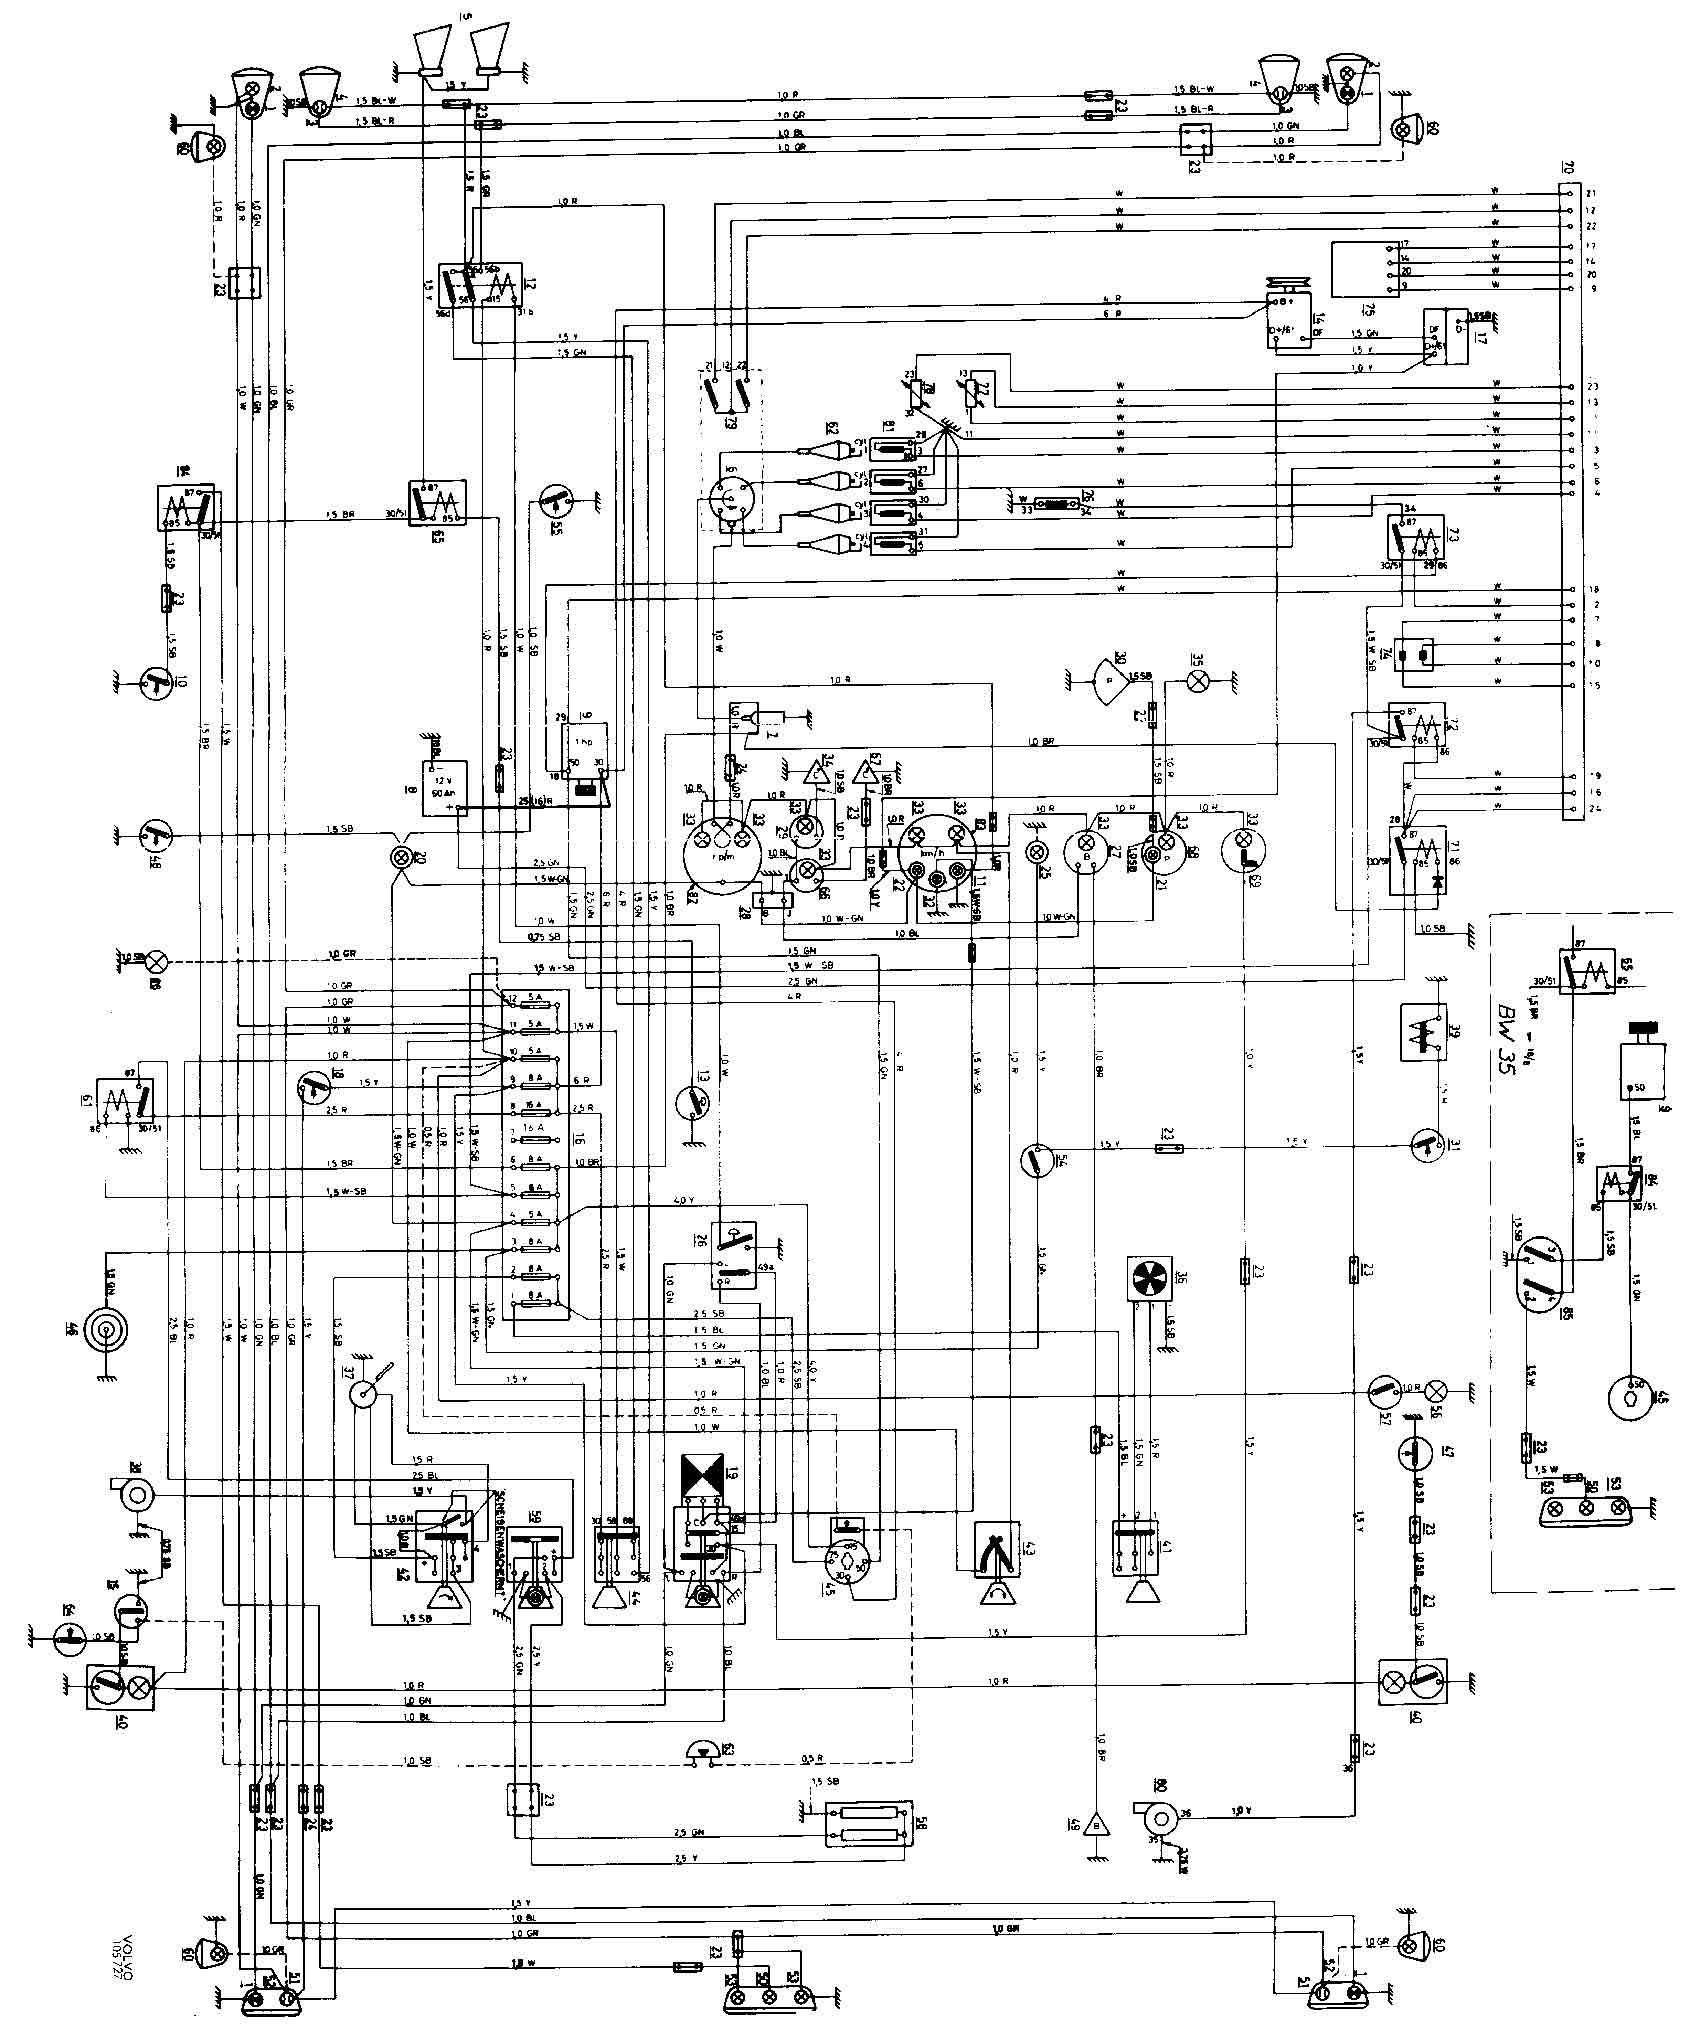 1800E Wiring Diagram volvo v70 wiring diagram 99 volvo s70 oil filter diagram \u2022 free volvo amazon wiring diagram at fashall.co